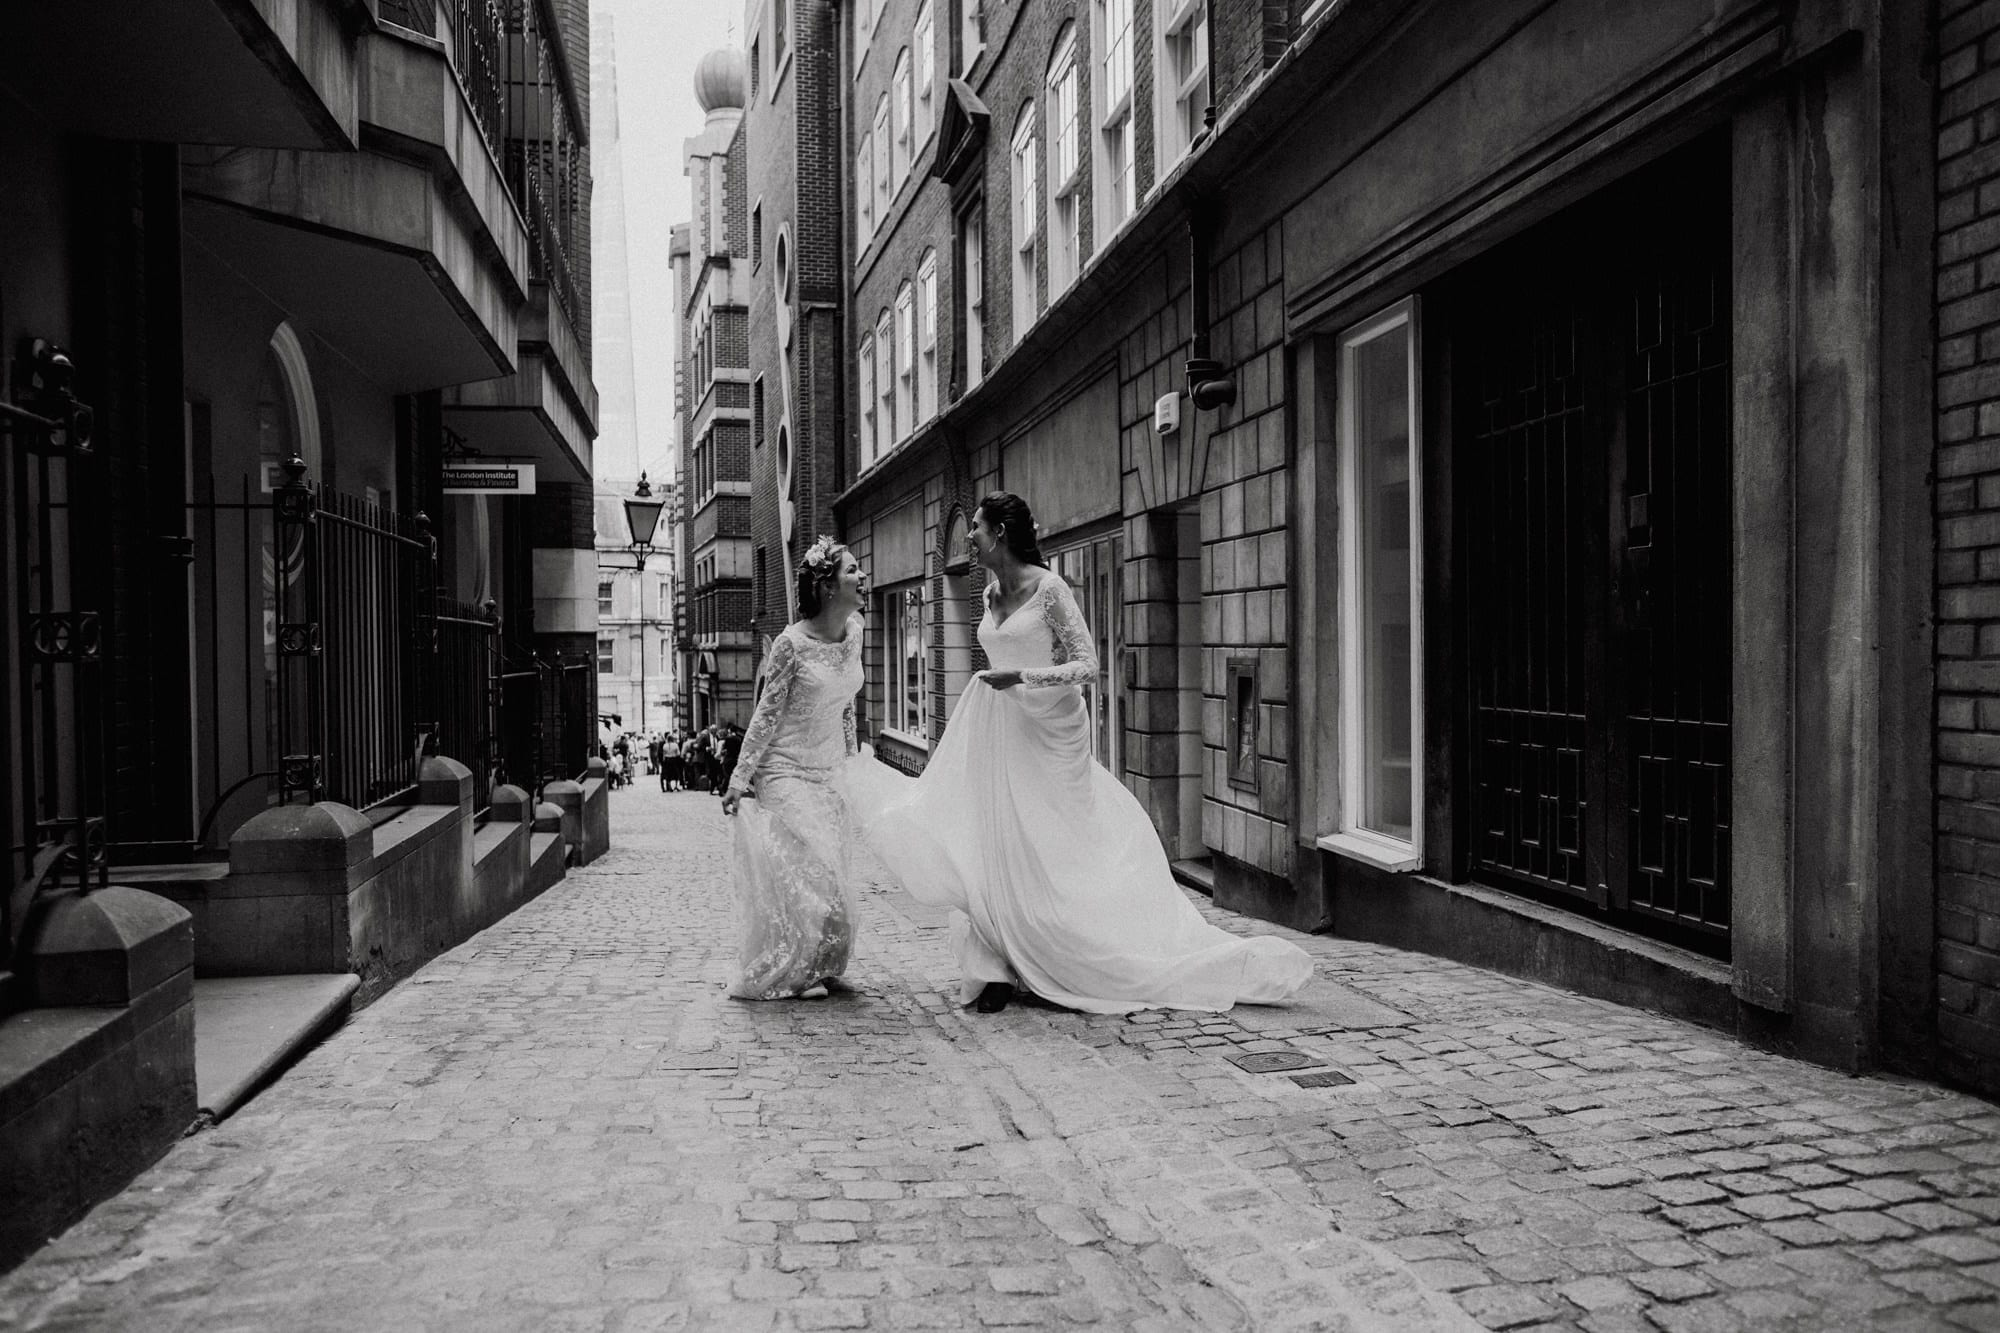 Two brides having fun on their wedding day in London